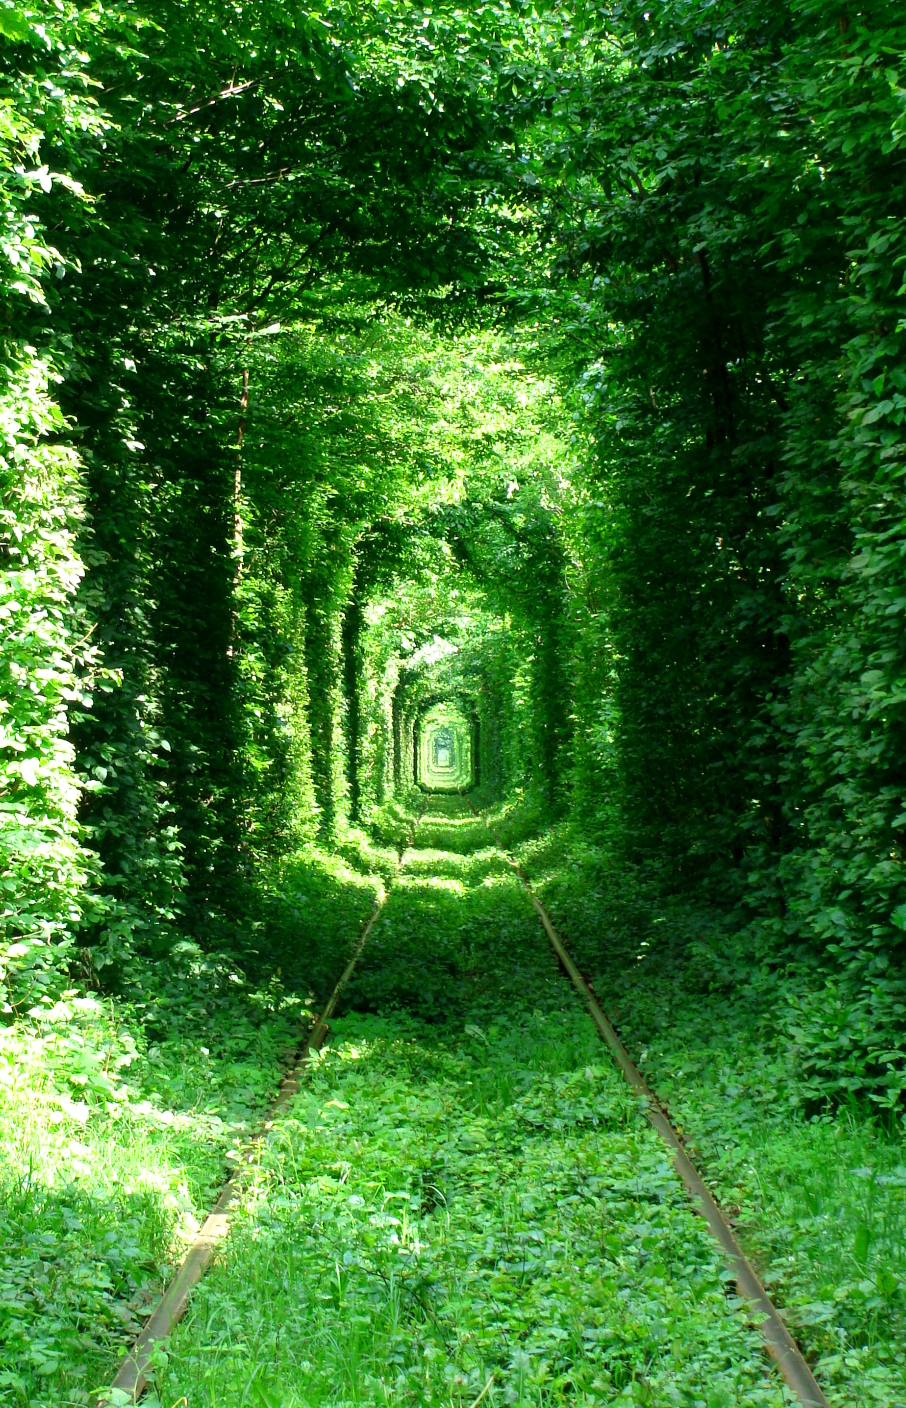 """Tunnel of Love"" in Rivne, Ukraine - by serhei"